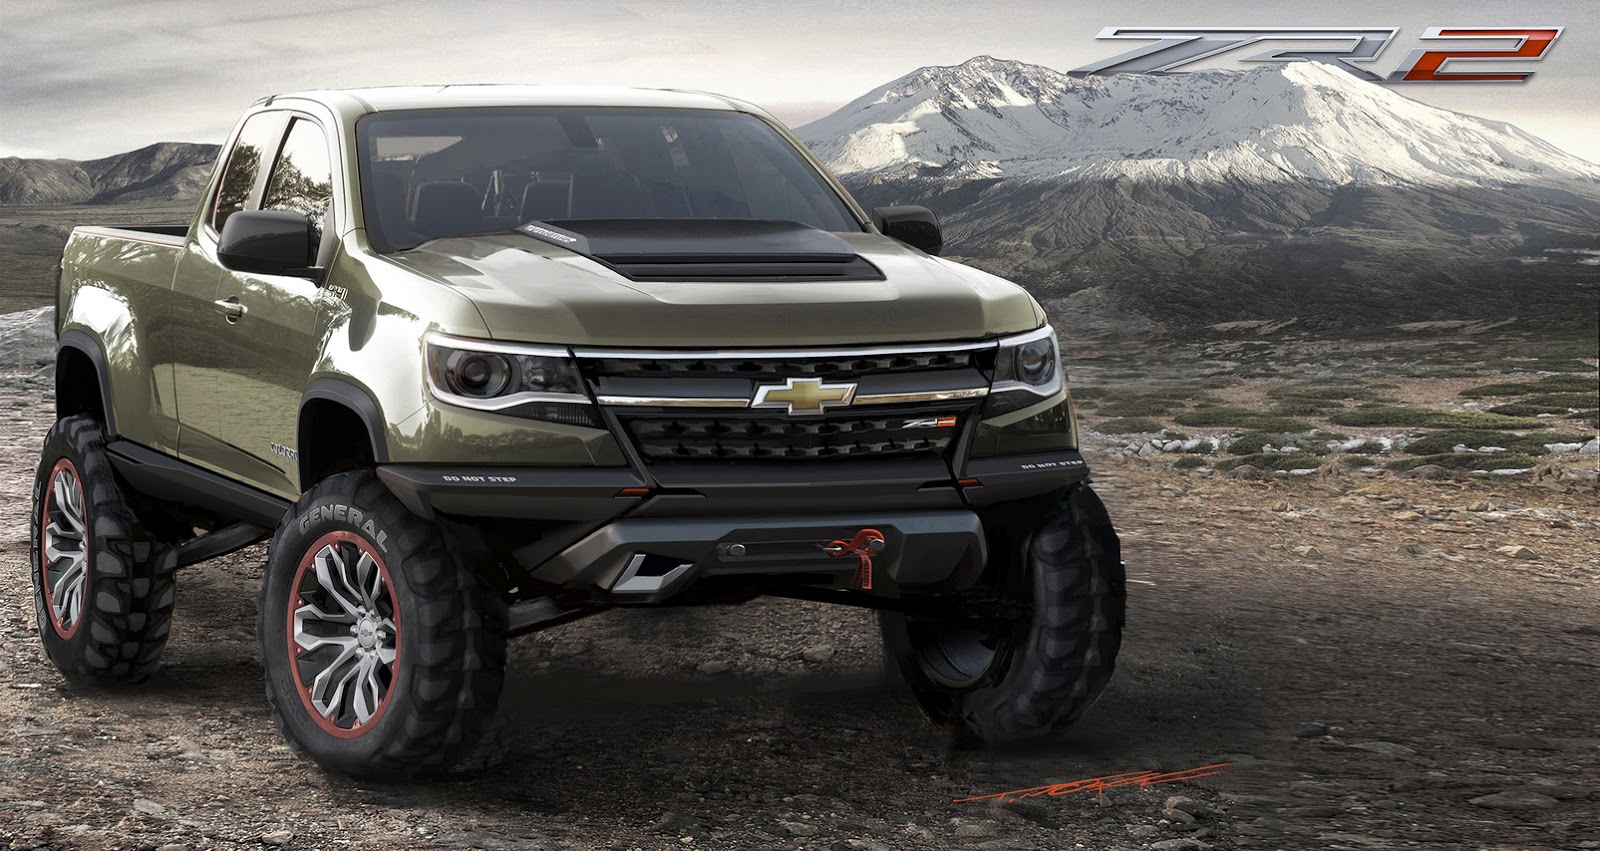 chevy 39 s diesel powered colorado zr2 concept is one helluva cool truck carscoops. Black Bedroom Furniture Sets. Home Design Ideas